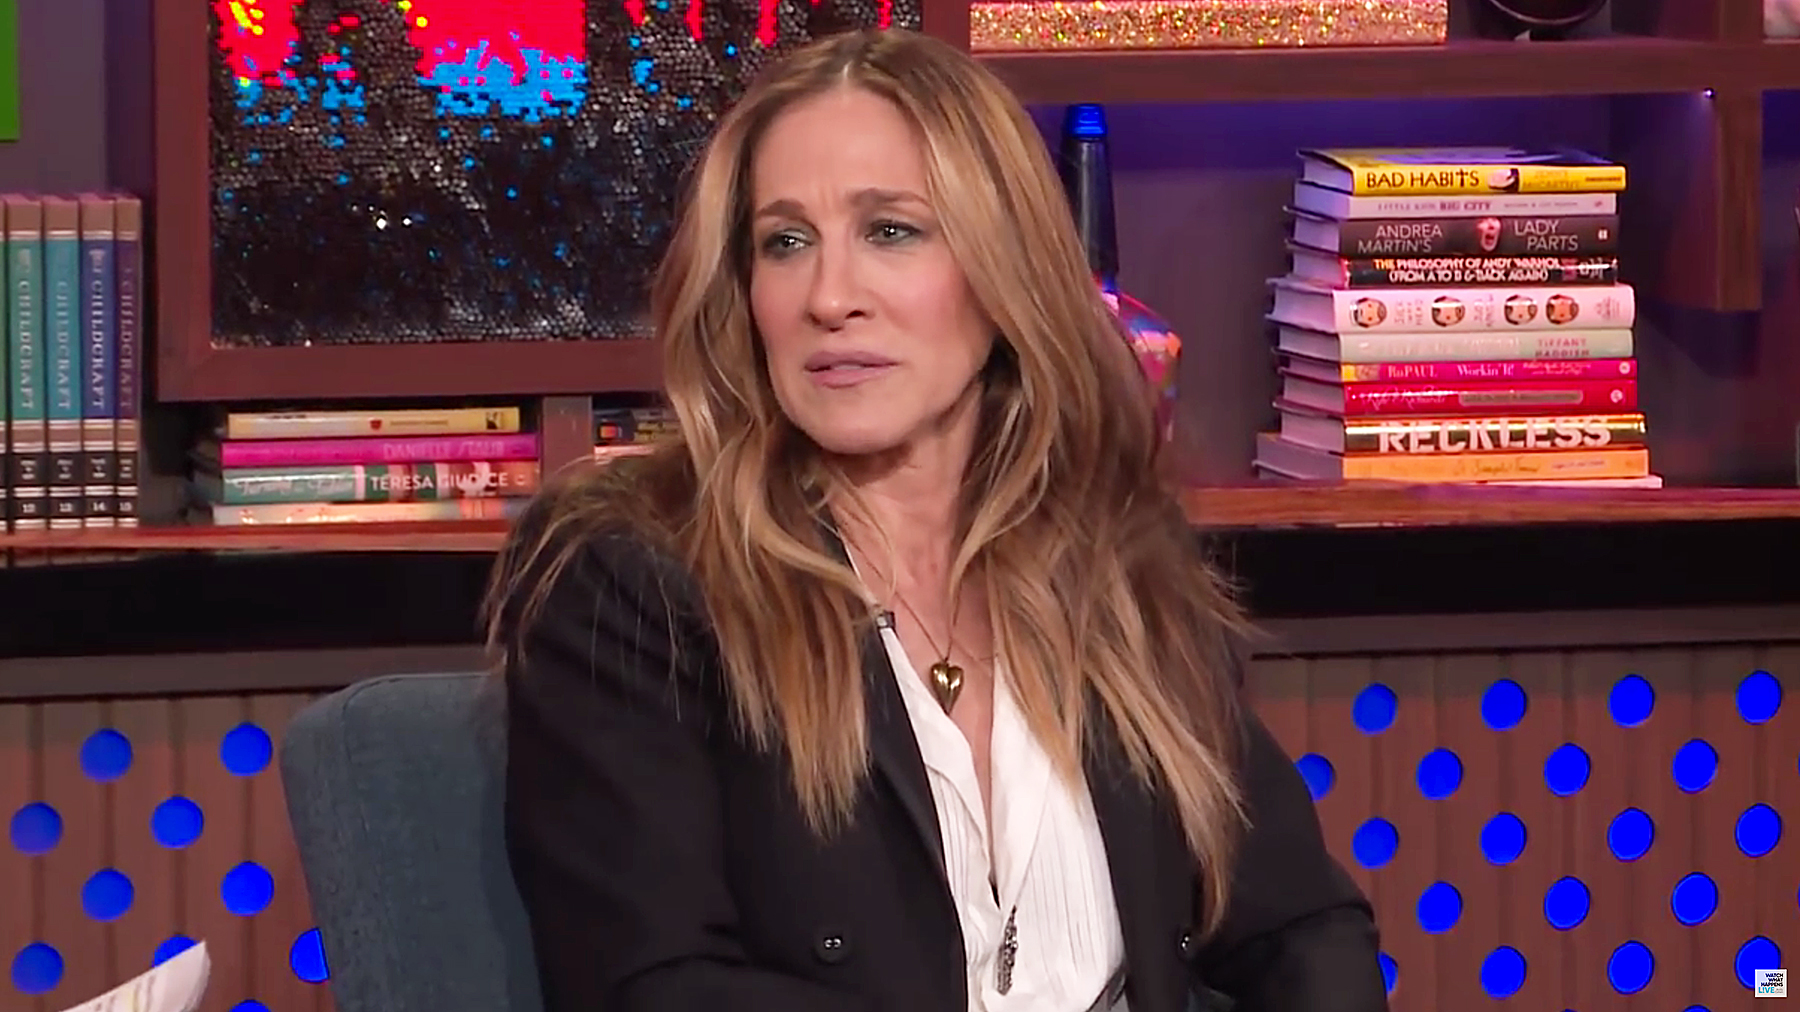 Sarah Jessica Parker Heartbroken Over Kim Cattrall Comments